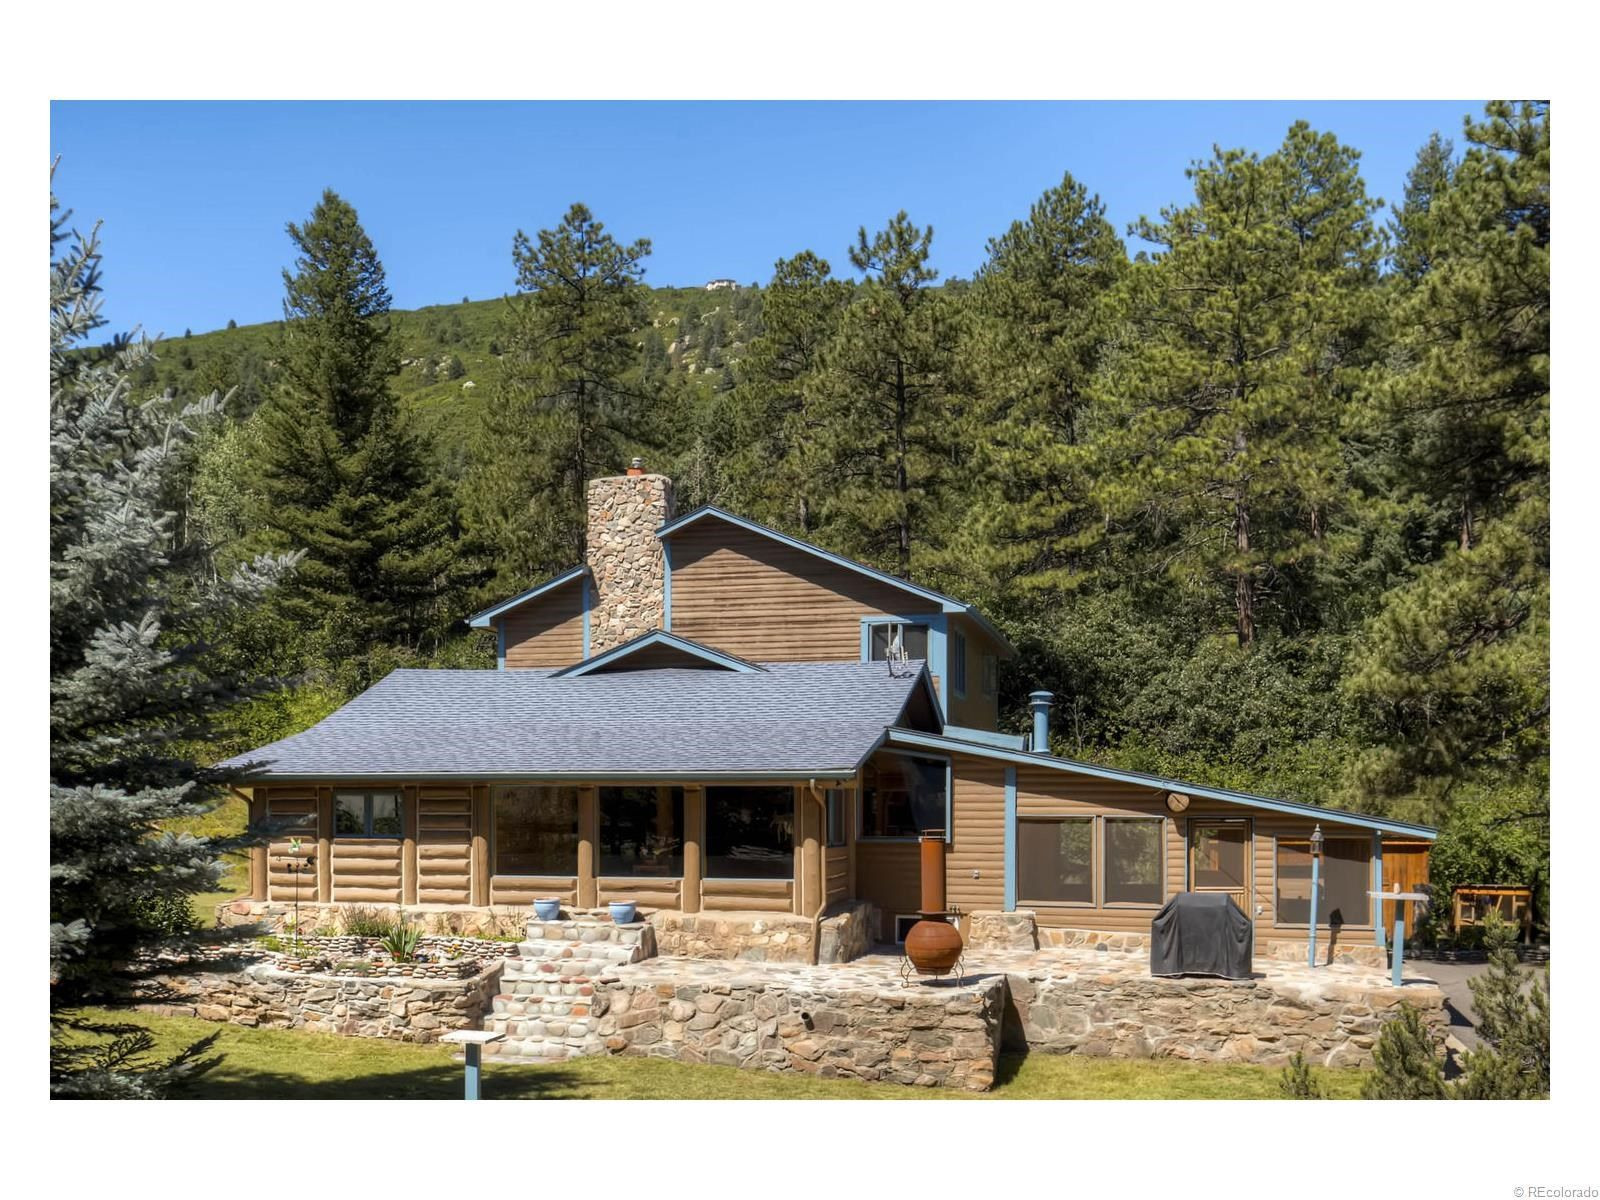 sale cottages lakeside log cabins home colorado for